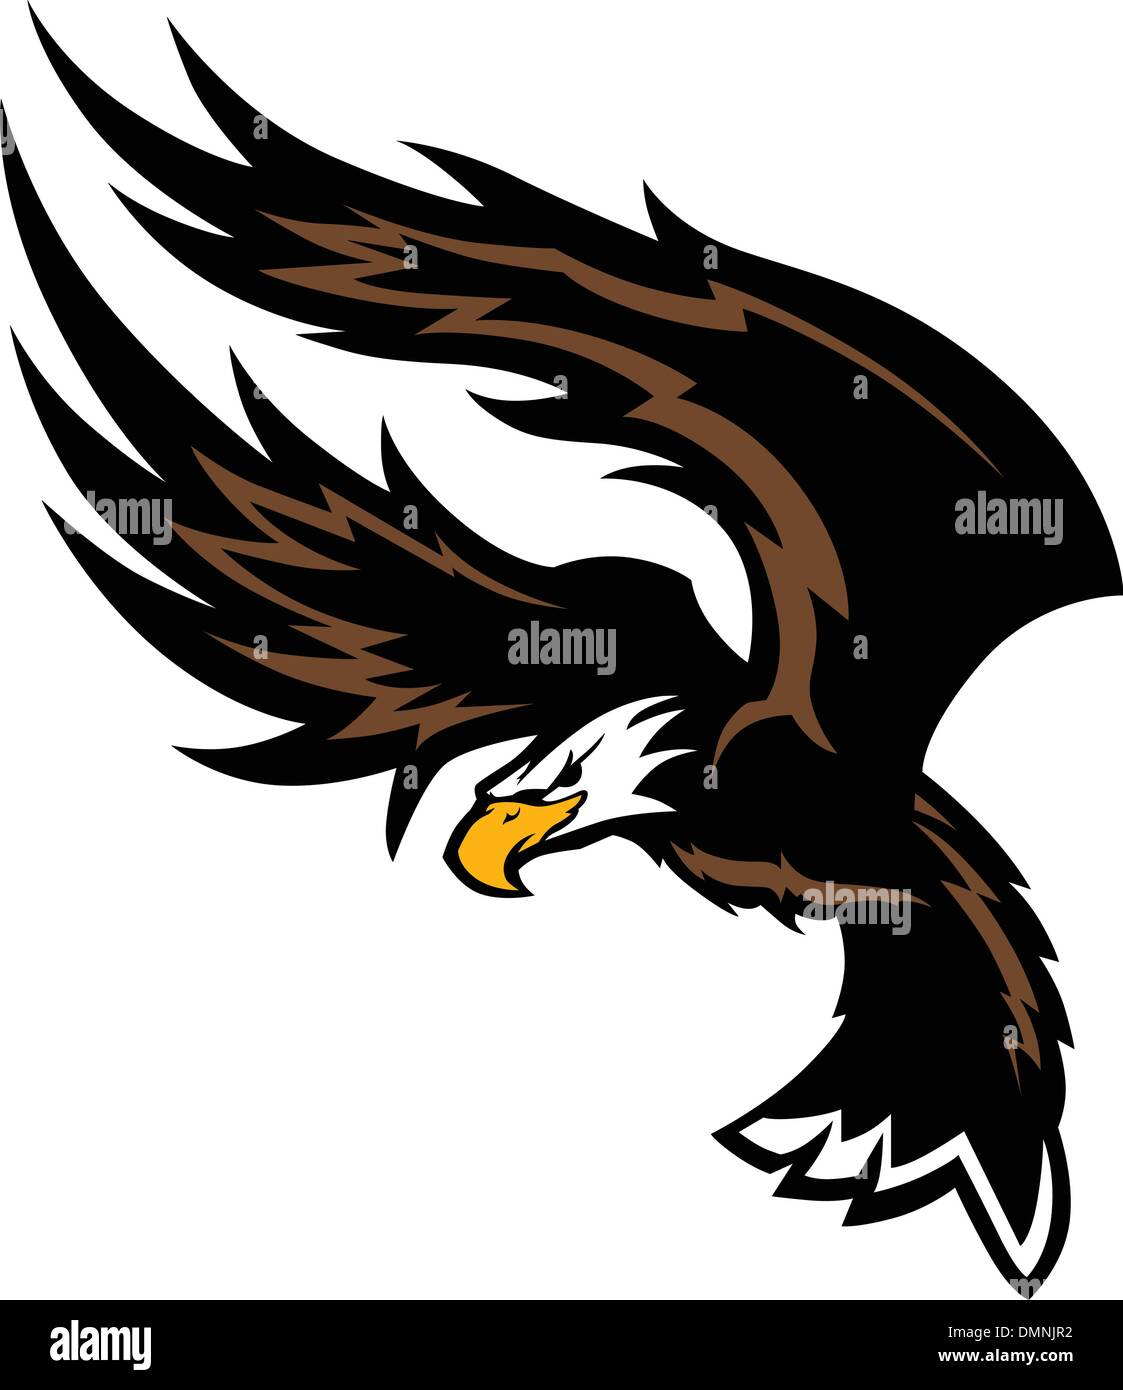 flying eagle wings mascot design stock vector image art alamy https www alamy com flying eagle wings mascot design image64399974 html